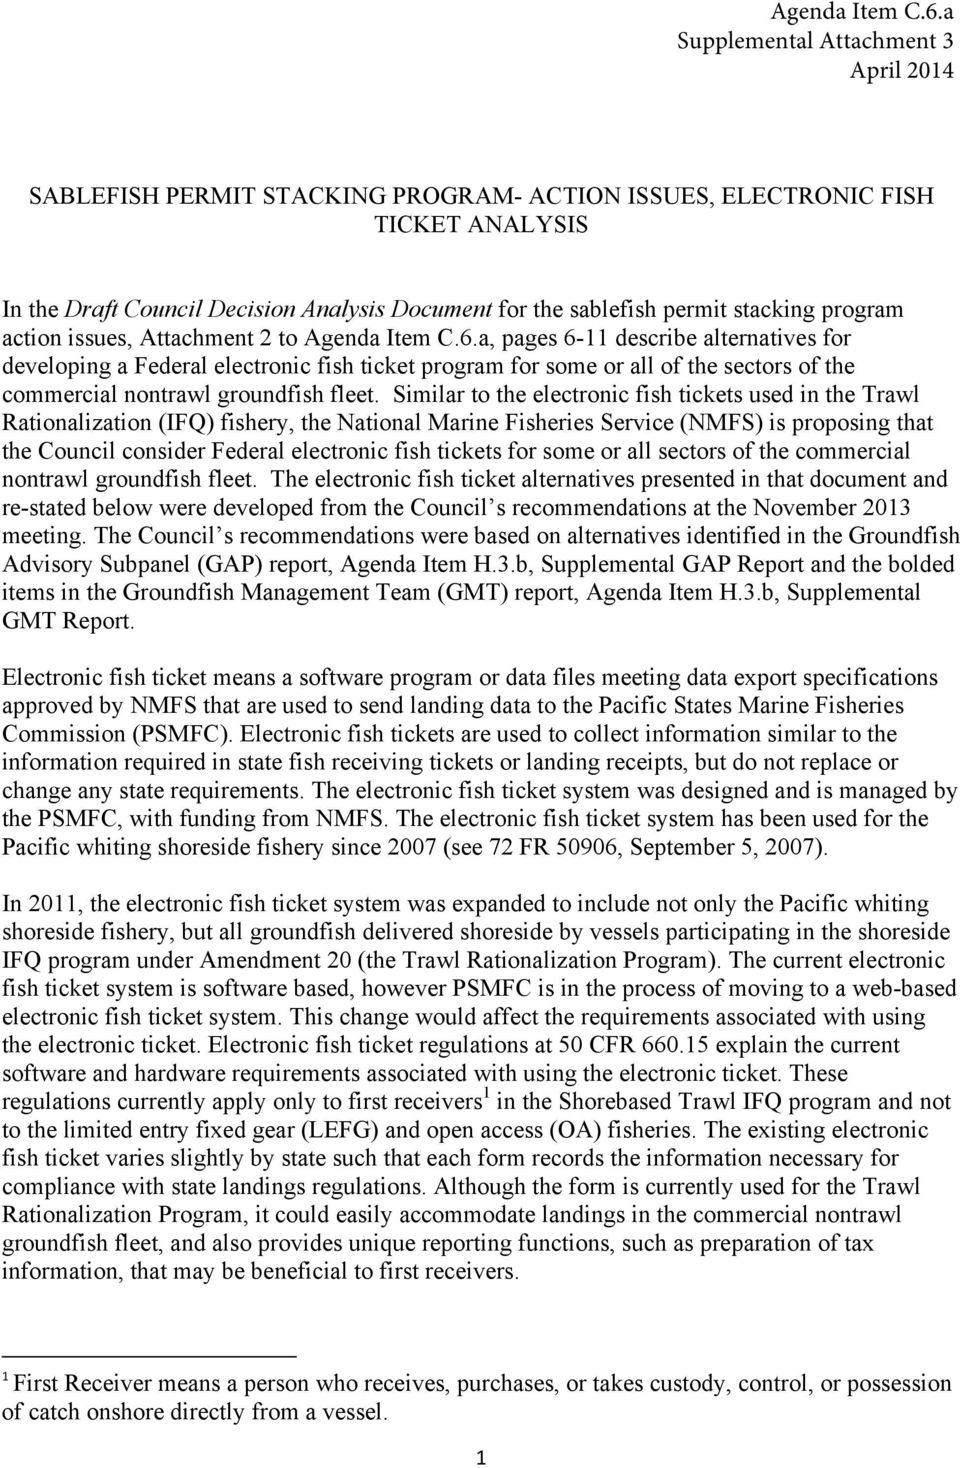 stacking program action issues, Attachment 2 to a, pages 6-11 describe alternatives for developing a Federal electronic fish ticket program for some or all of the sectors of the commercial nontrawl